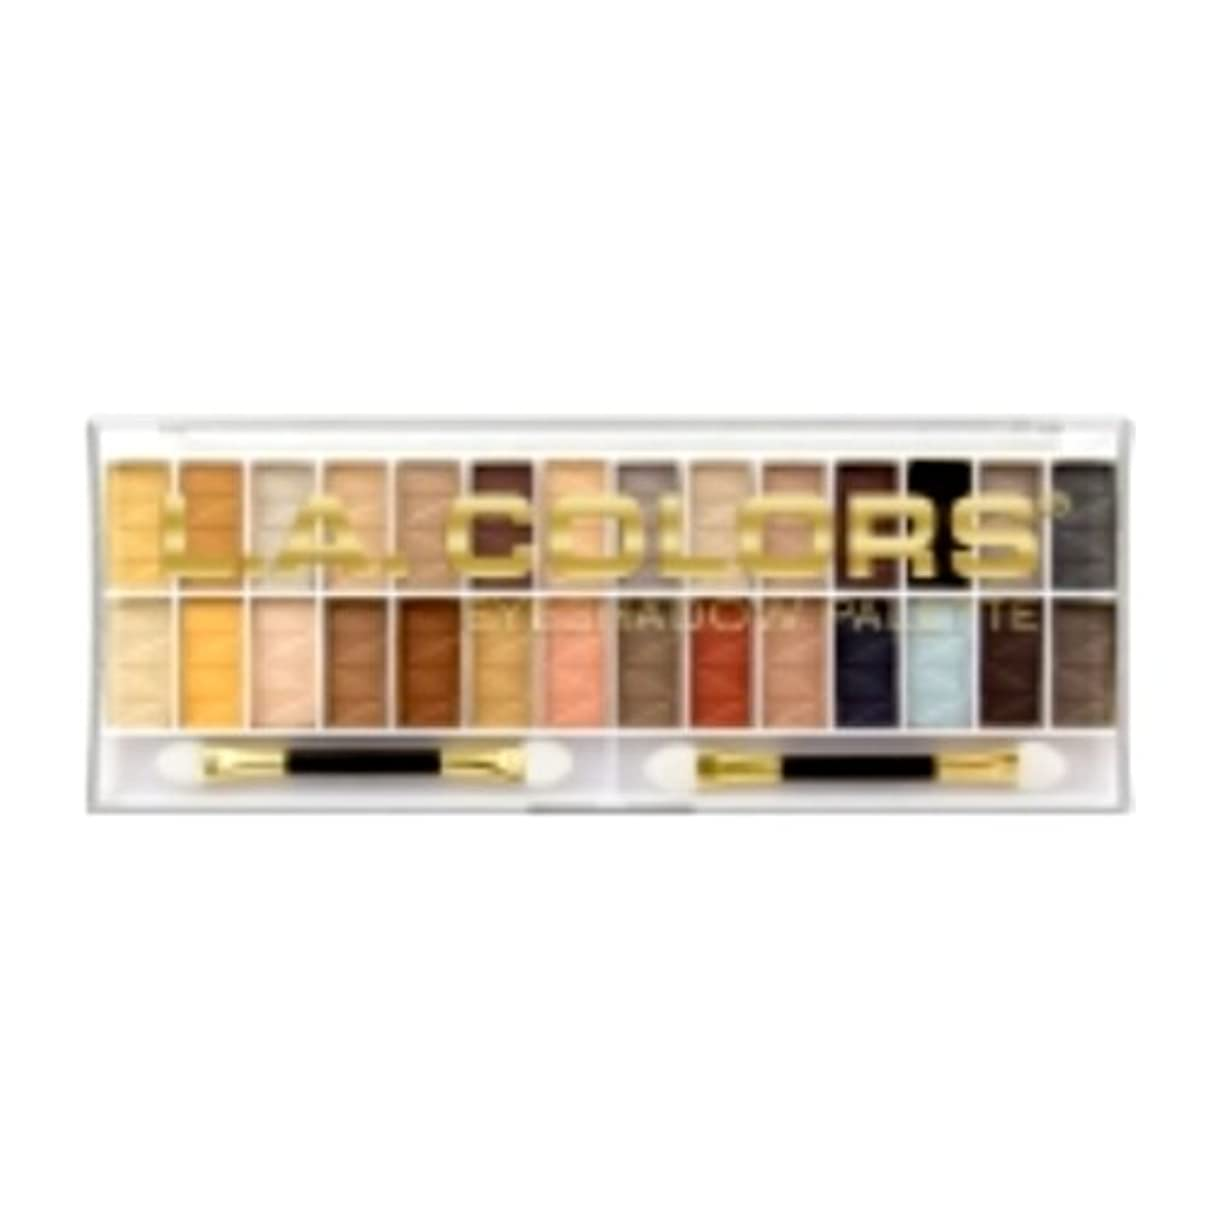 ハブブアッパー化合物(6 Pack) L.A. COLORS 28 Color Eyeshadow Palette - Hollywood (並行輸入品)